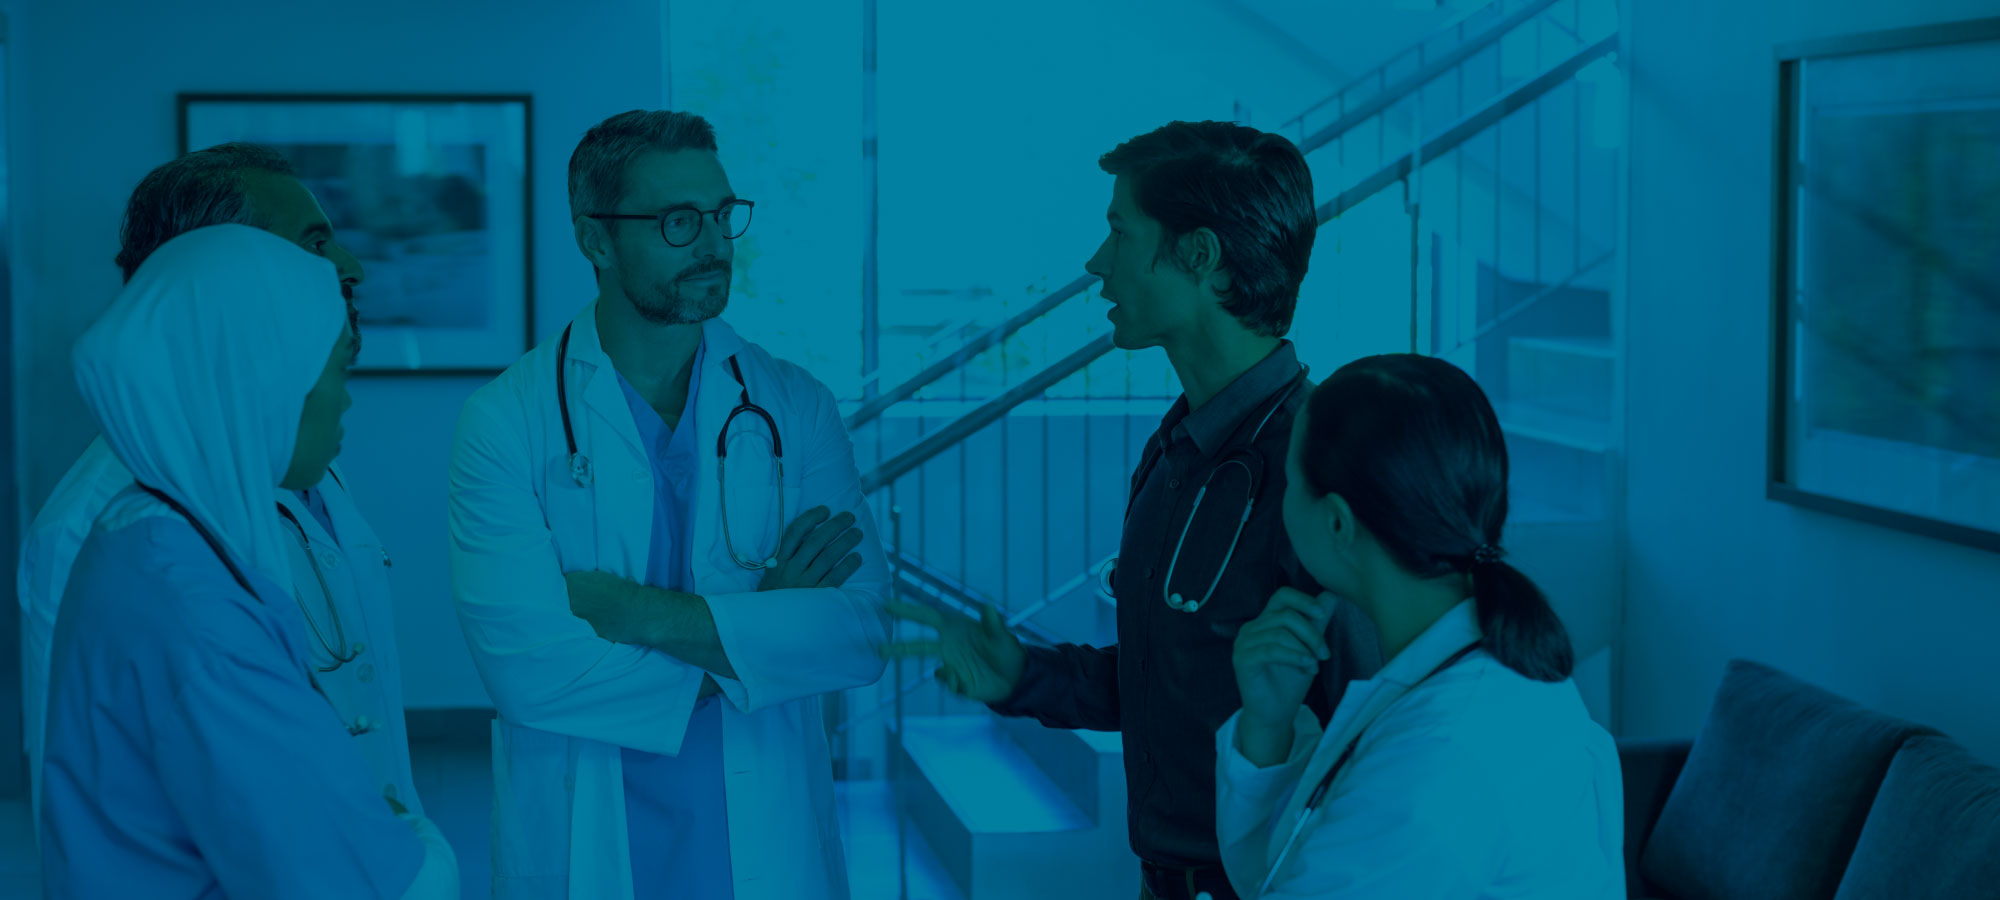 Liability insurance for Medical Professionals